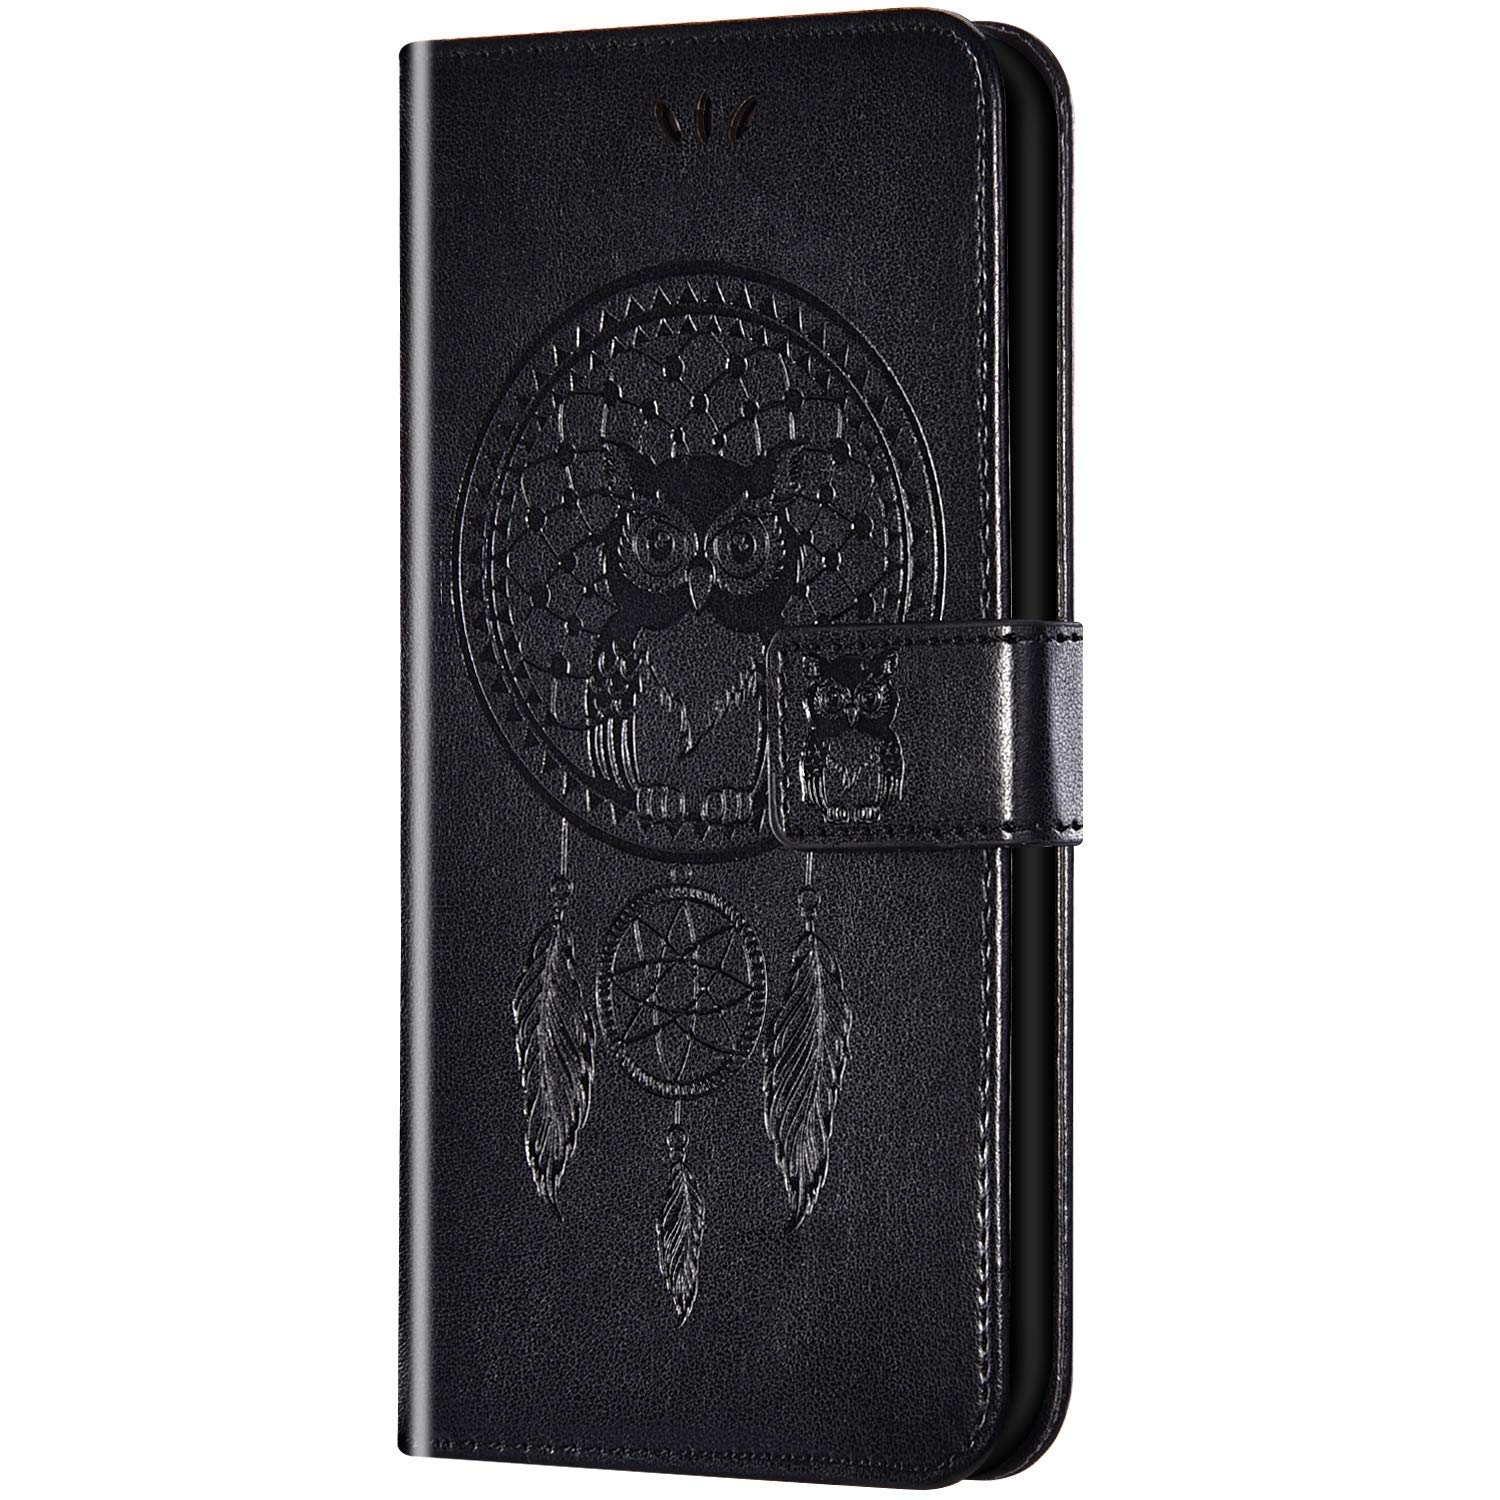 Case for Huawei Honor 8A/Huawei Y6 2019 Flip Case Ultra Slim PU Leather Wallet with Card Holder/Slot and Magnetic Closure Shockproof Owl Embossed Protective Cover for Huawei Honor 8A/Y6 2019,Black by ikasus